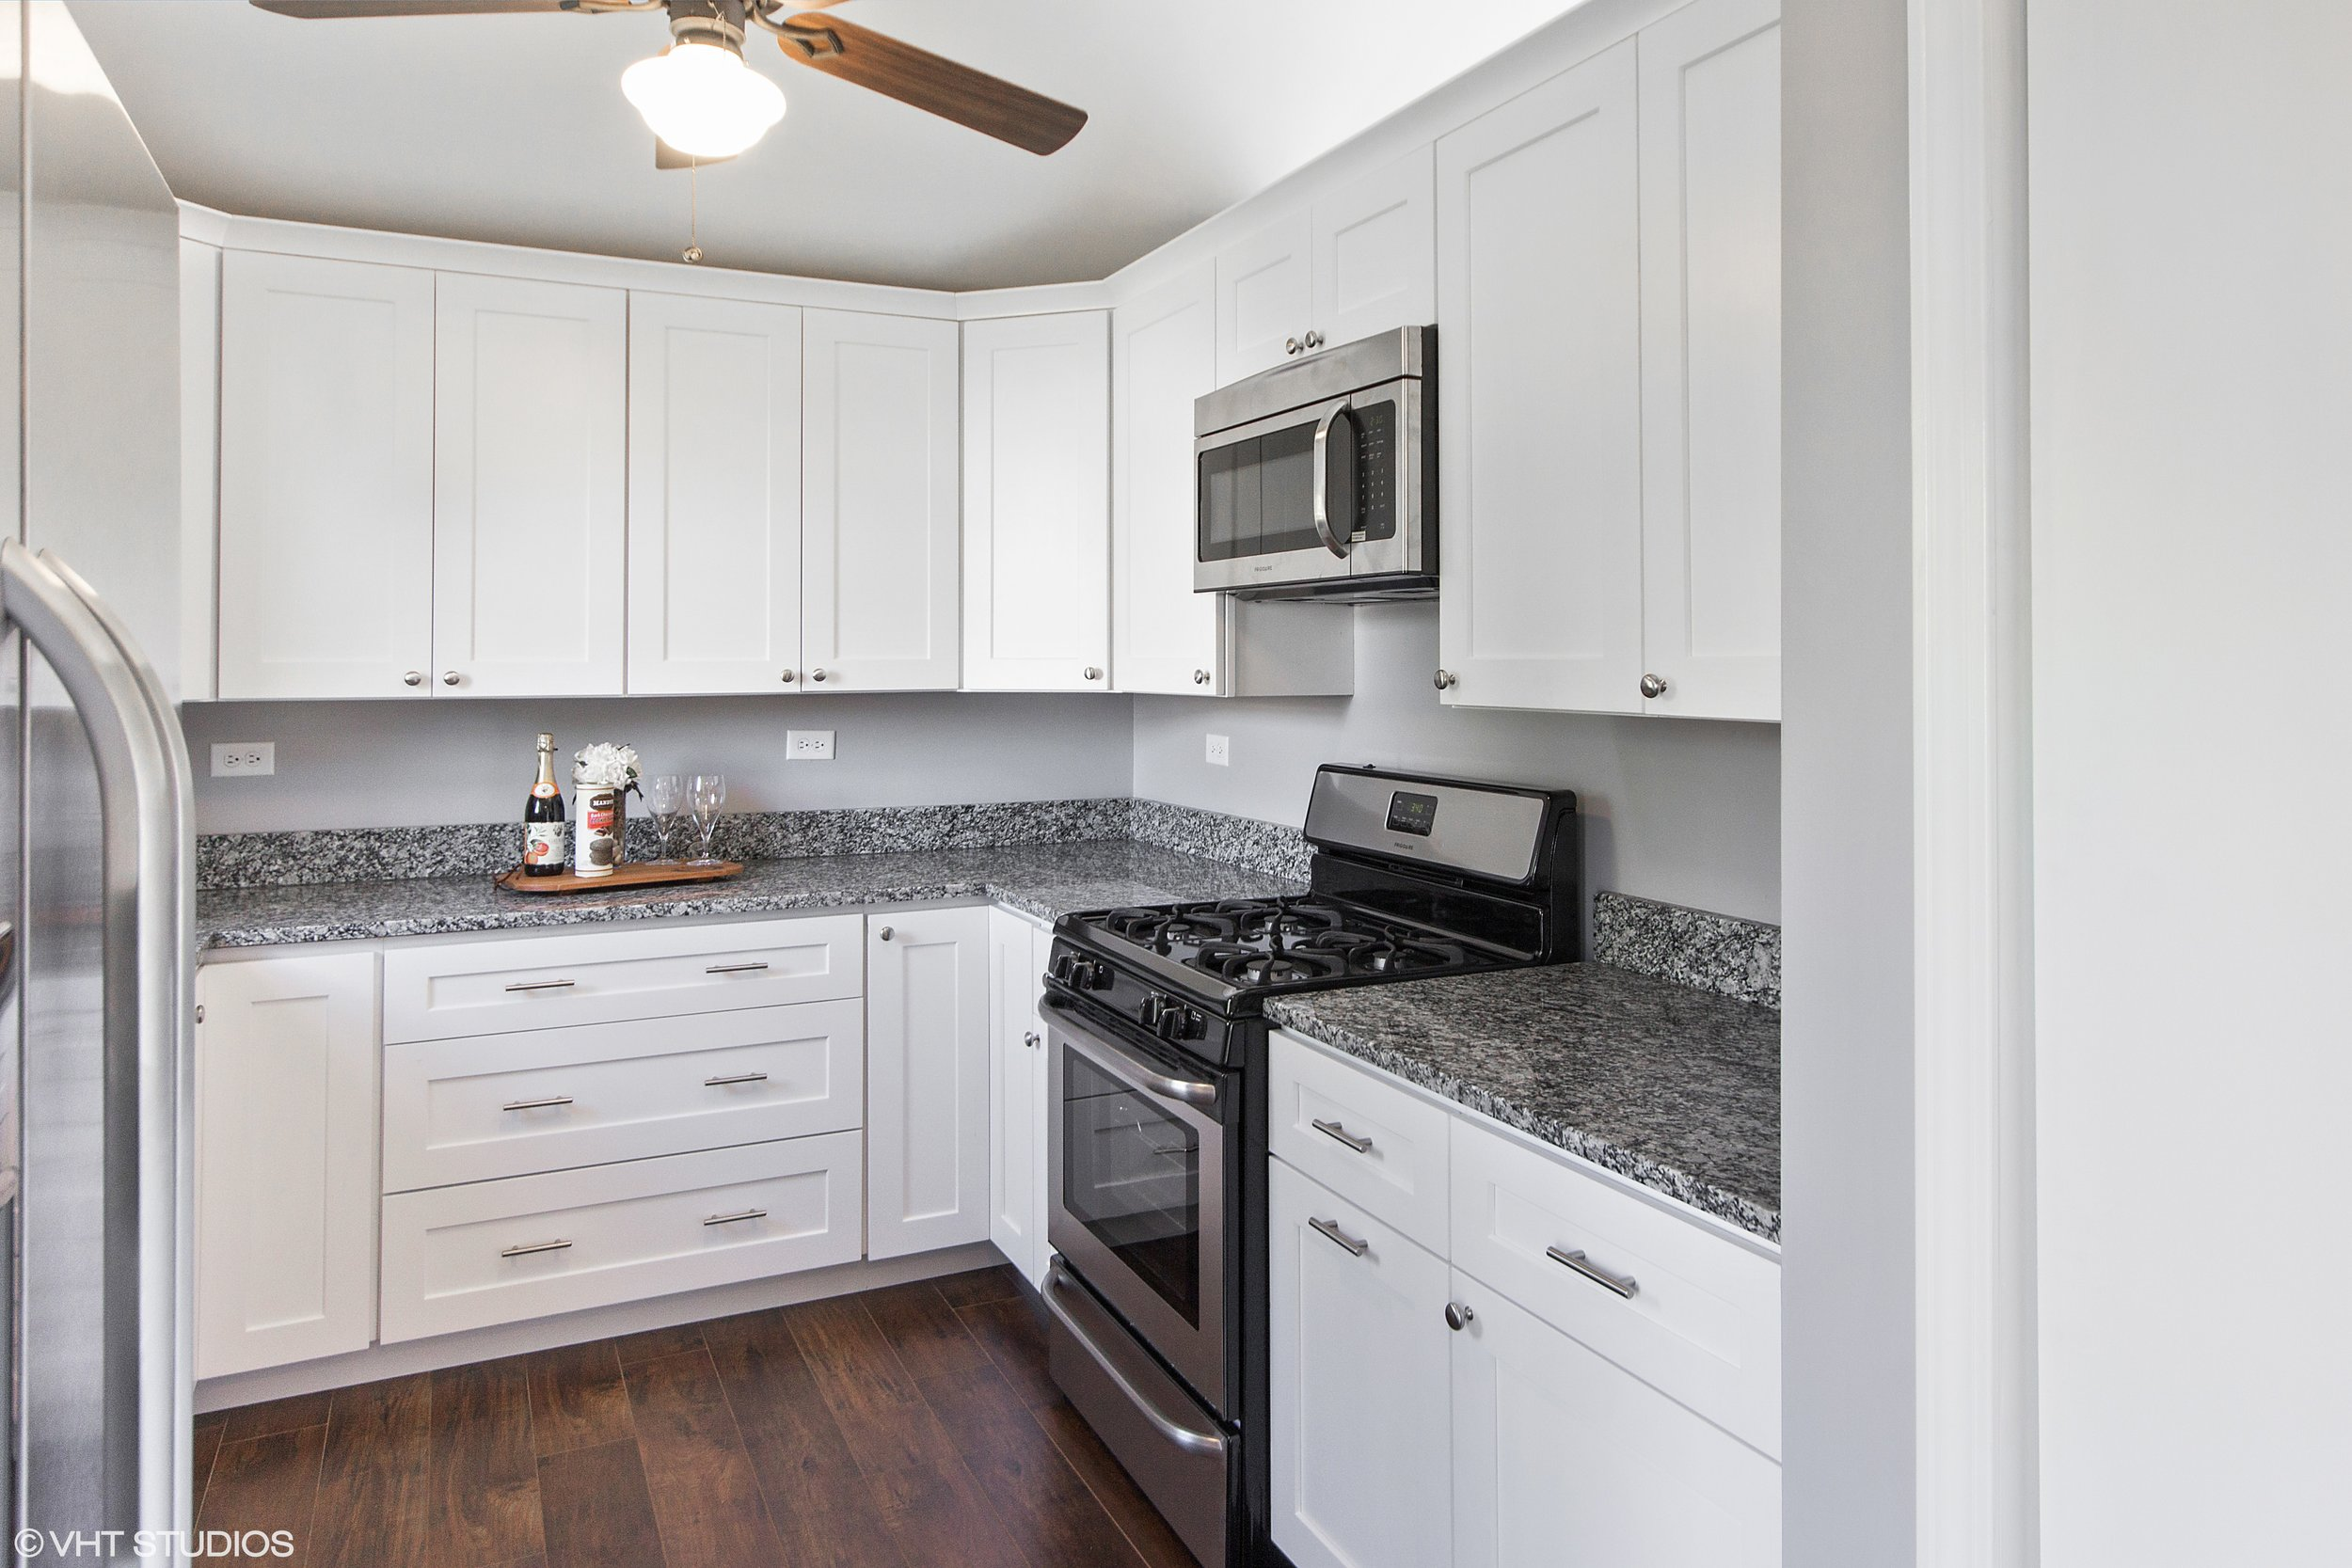 Kitchen Remodelingremodeling project built by Kure Construction in Naperville, IL.